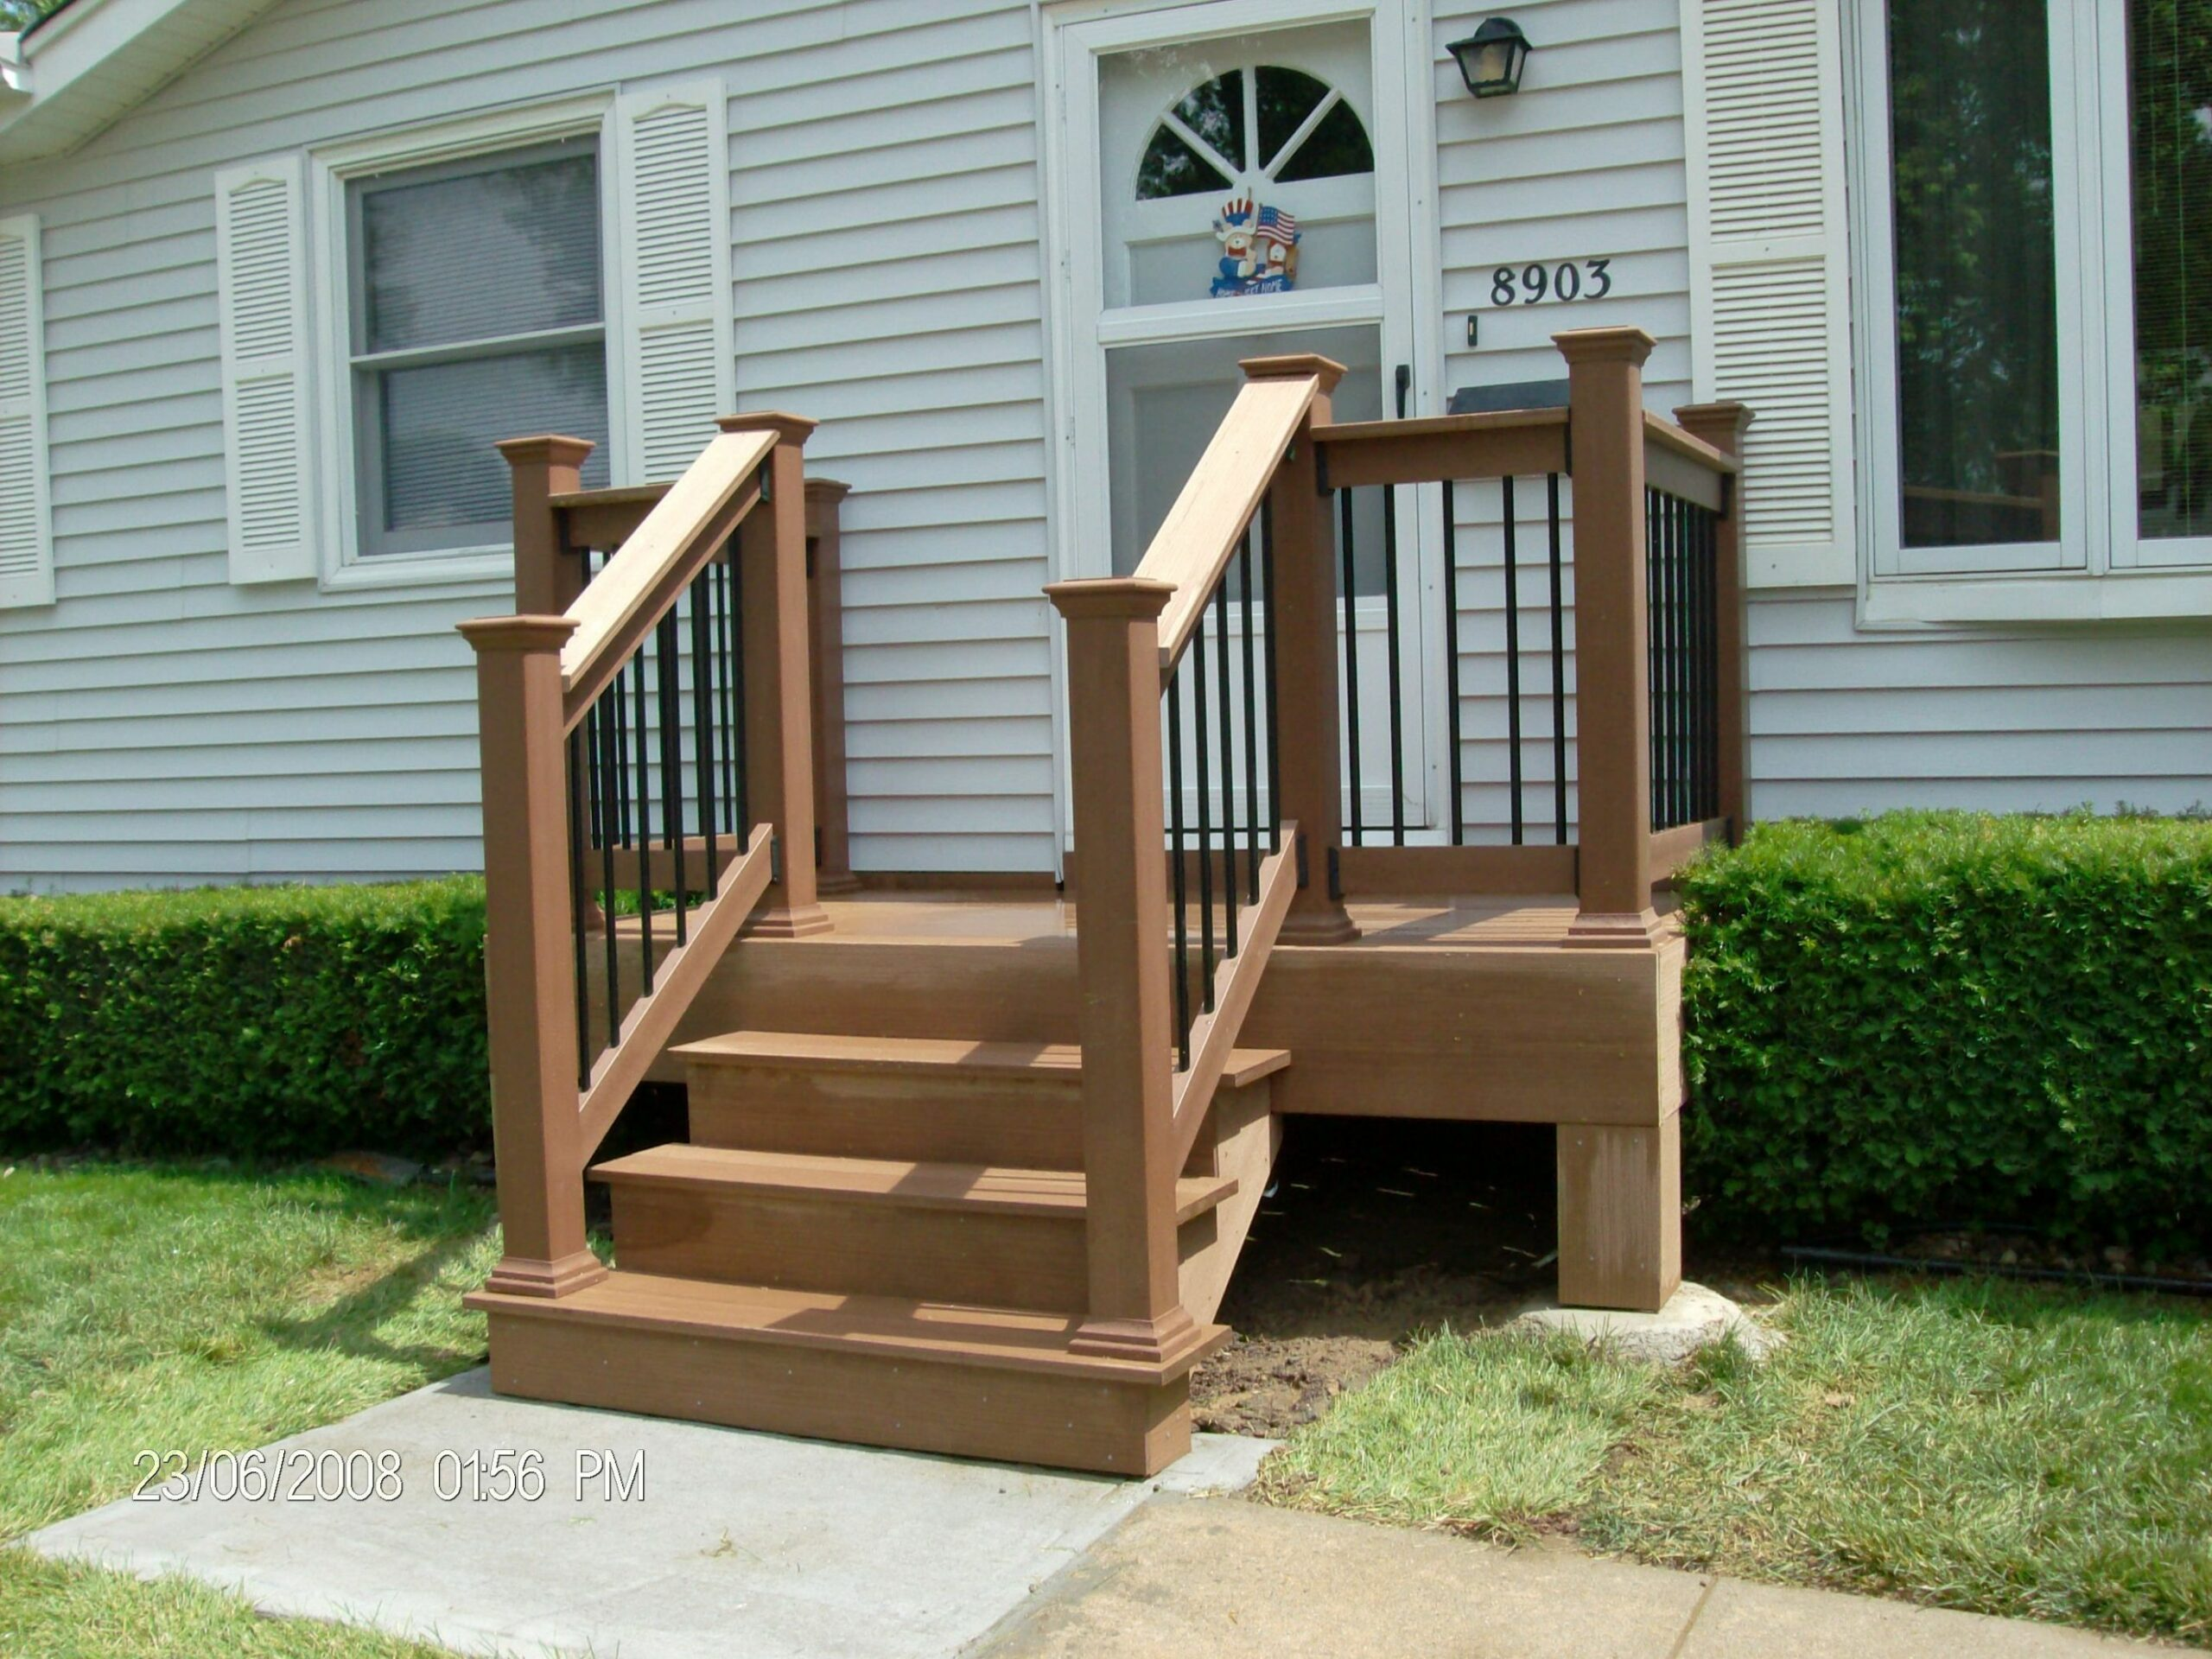 porches for mobile homes | Mobile+home+porch+ideas (With images ..